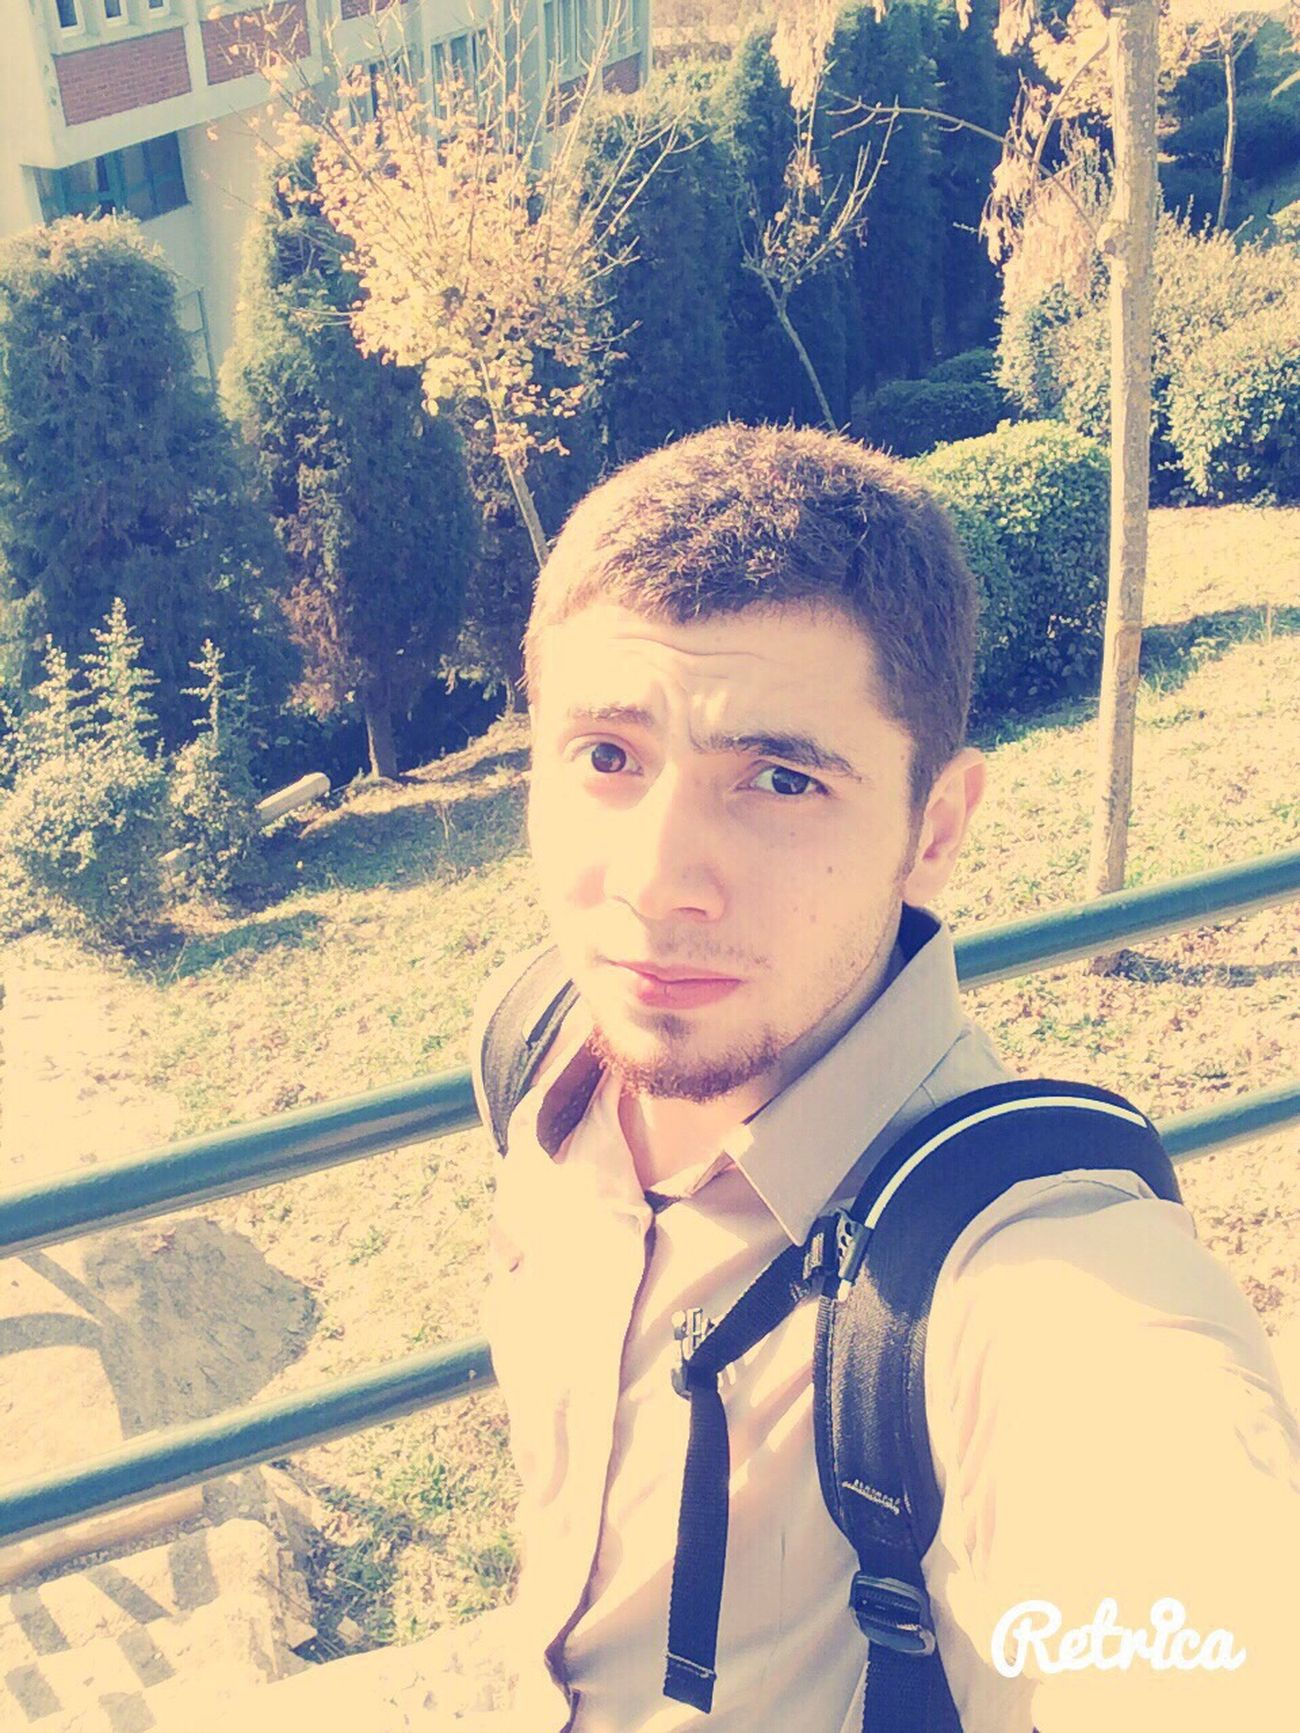 Fatihüniversitesi Handsome Goodmorning Selife ?